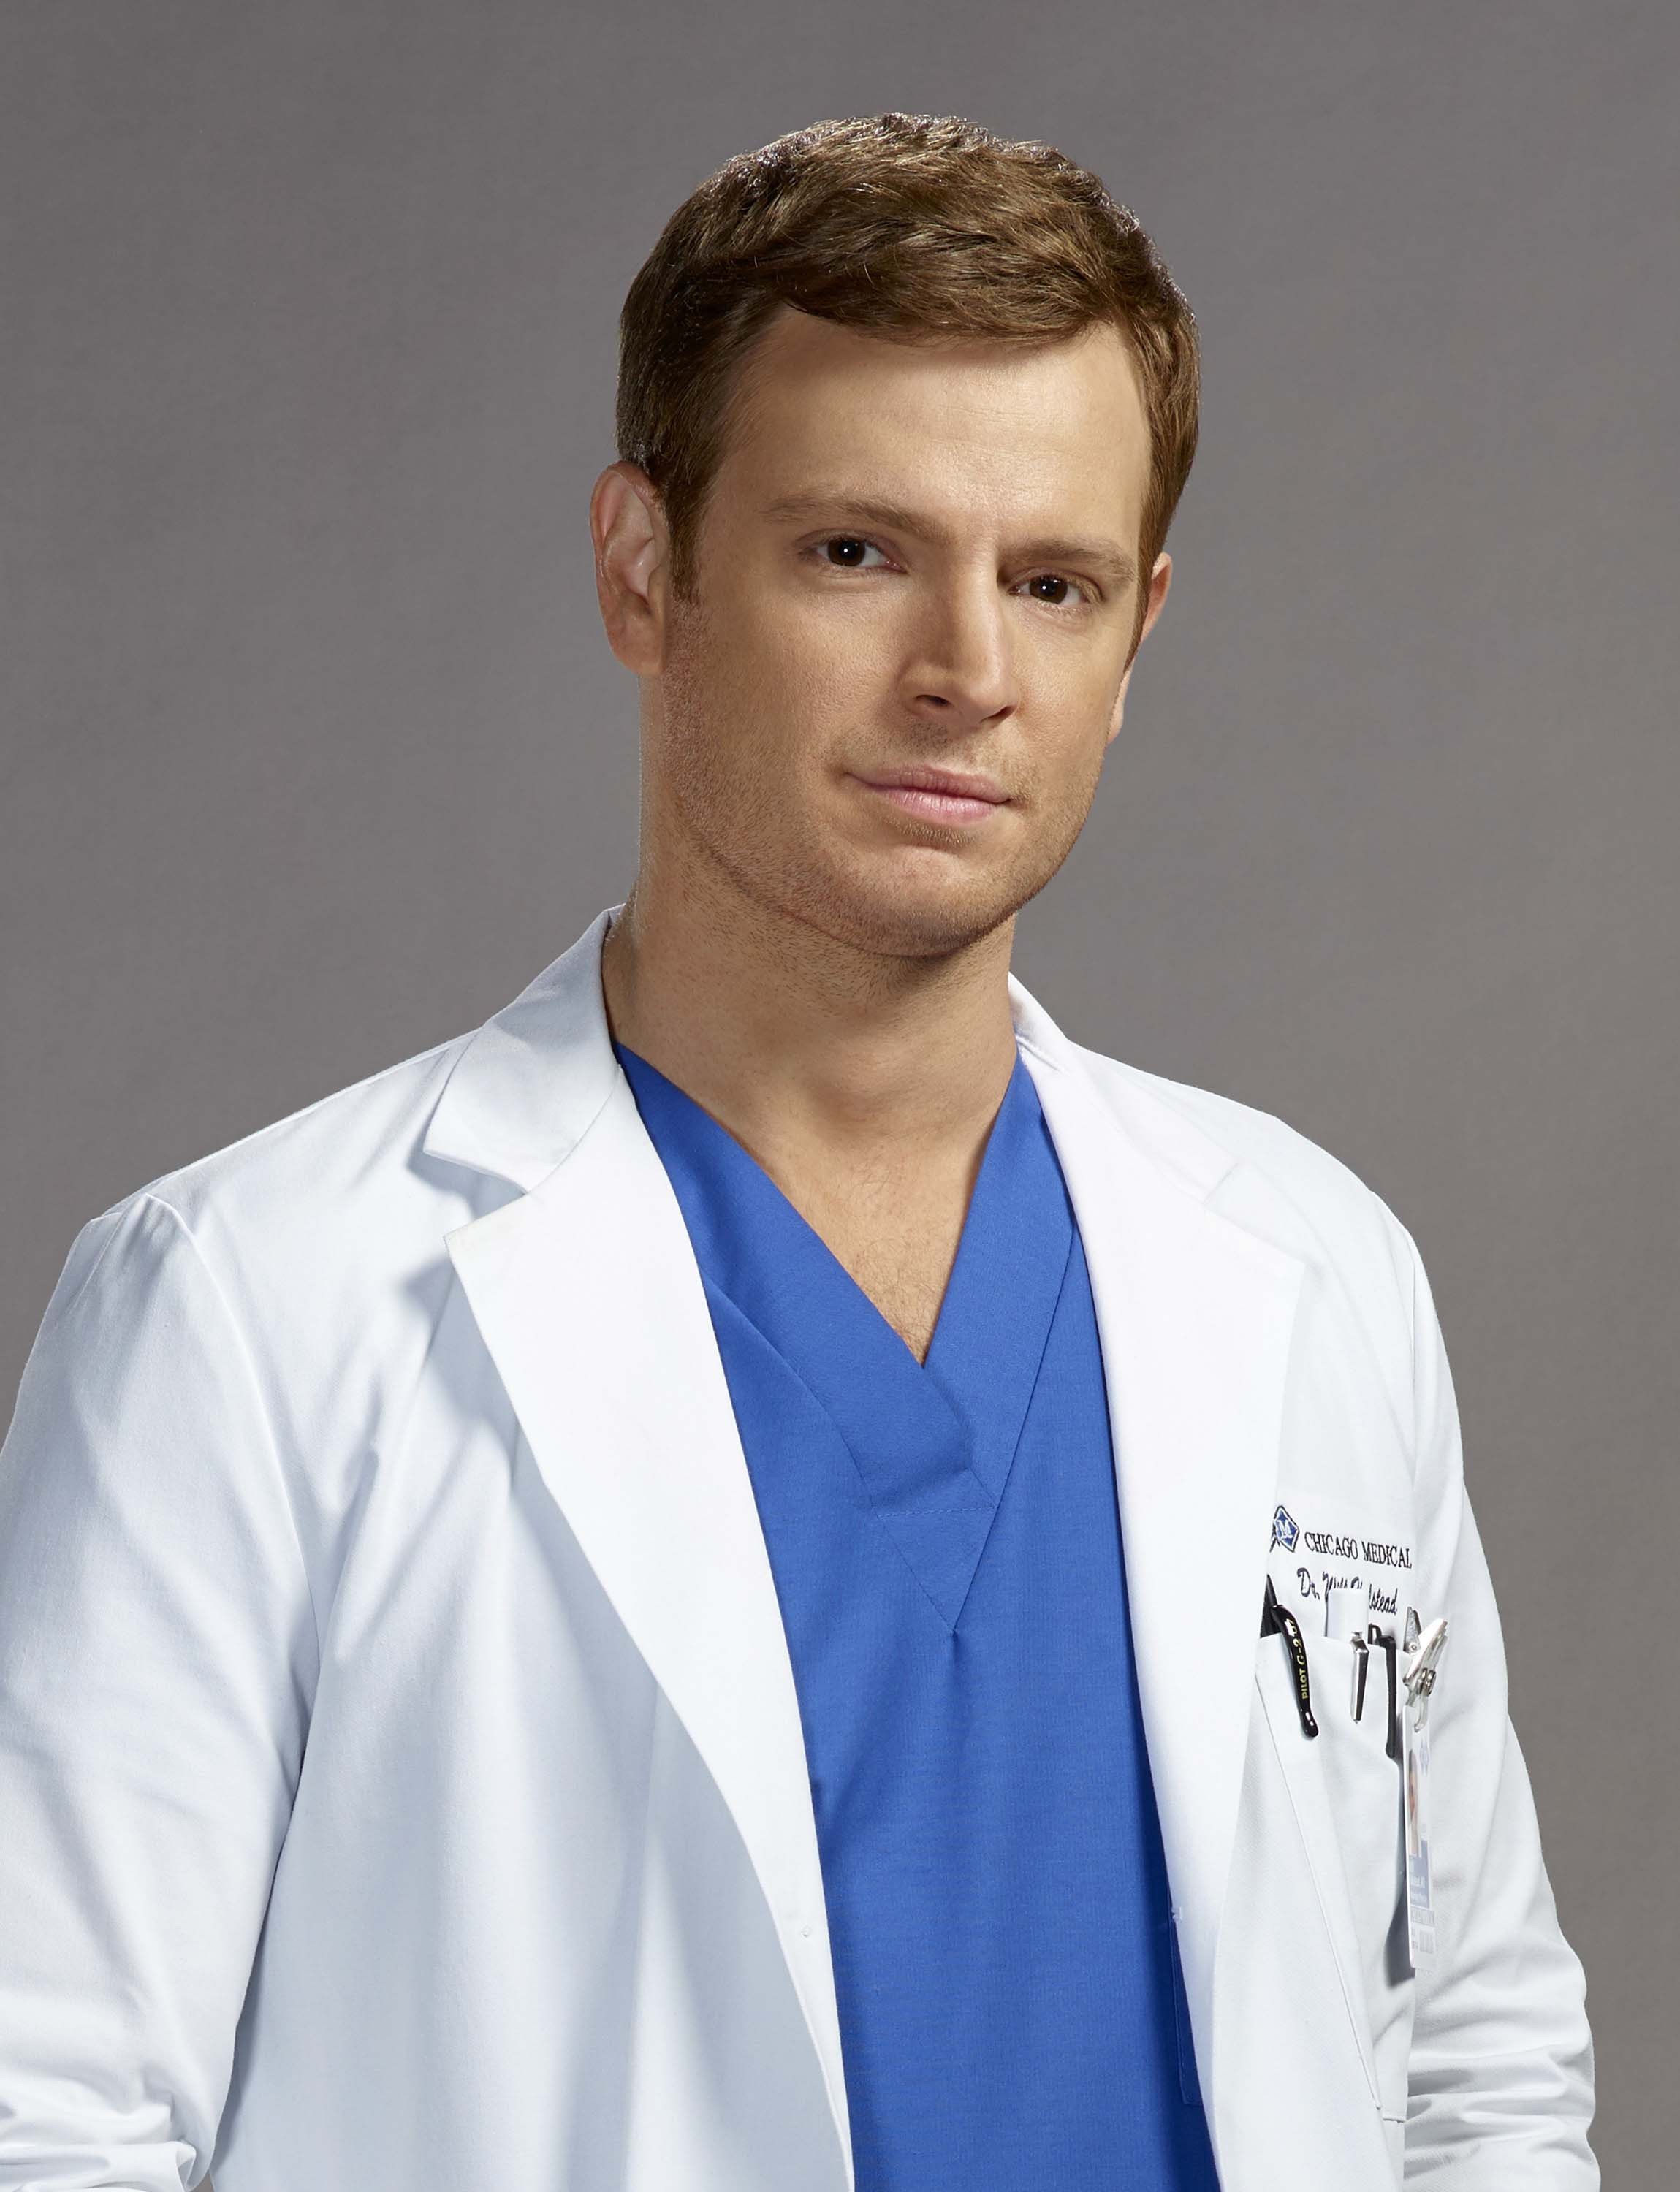 Dr. Will Halstead (Foto: Universal)